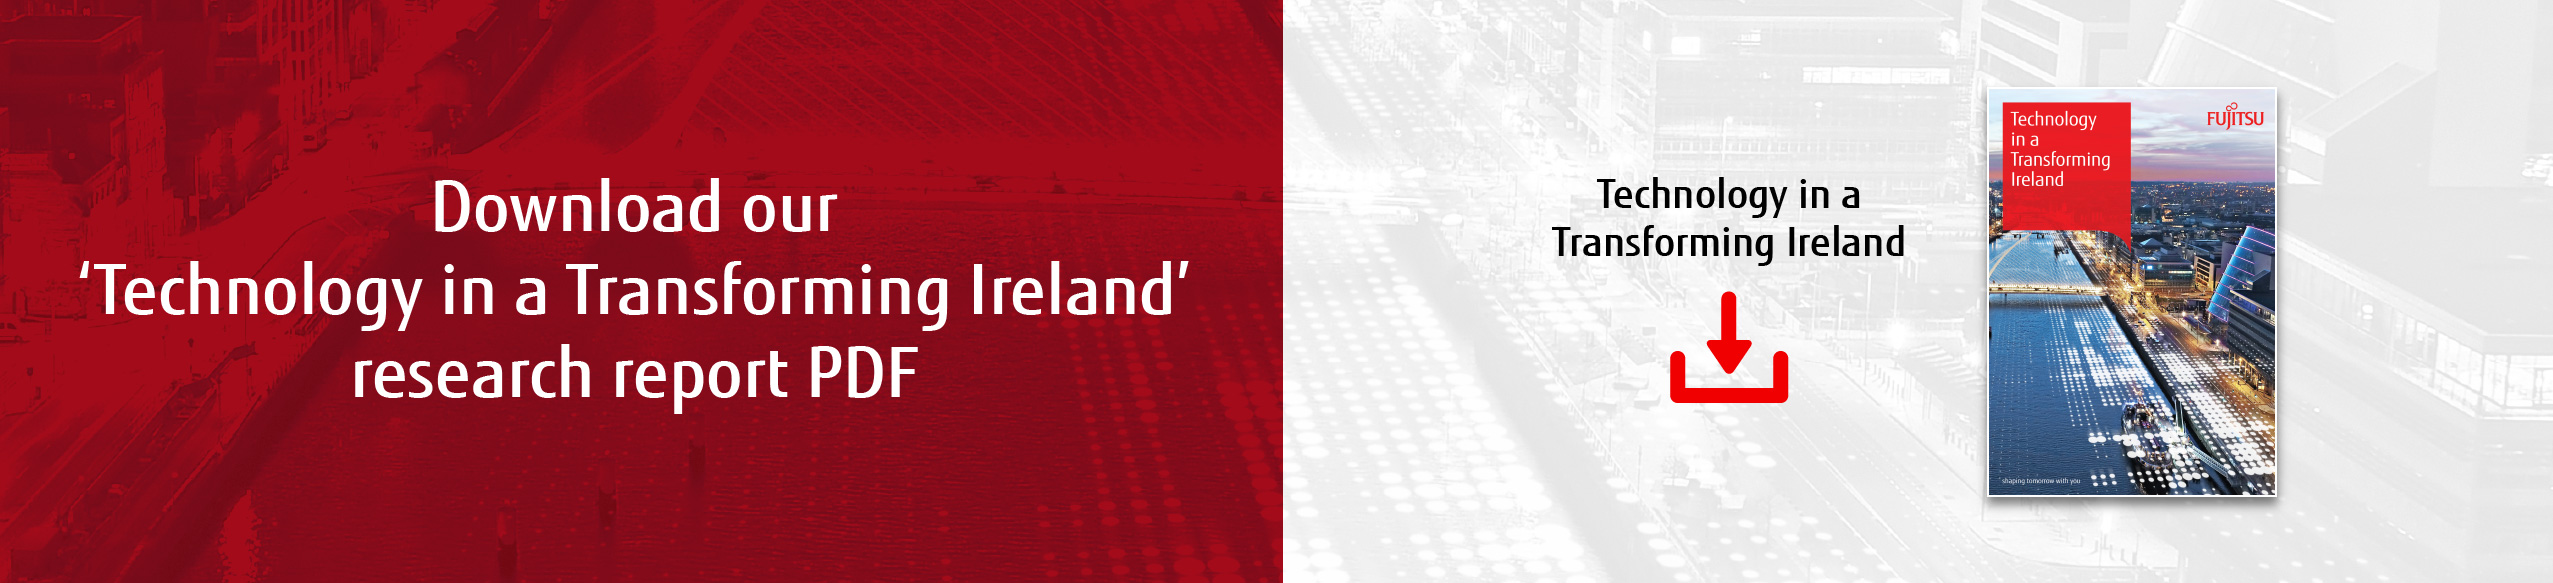 Download our Technology in a Transforming Ireland research report PDF